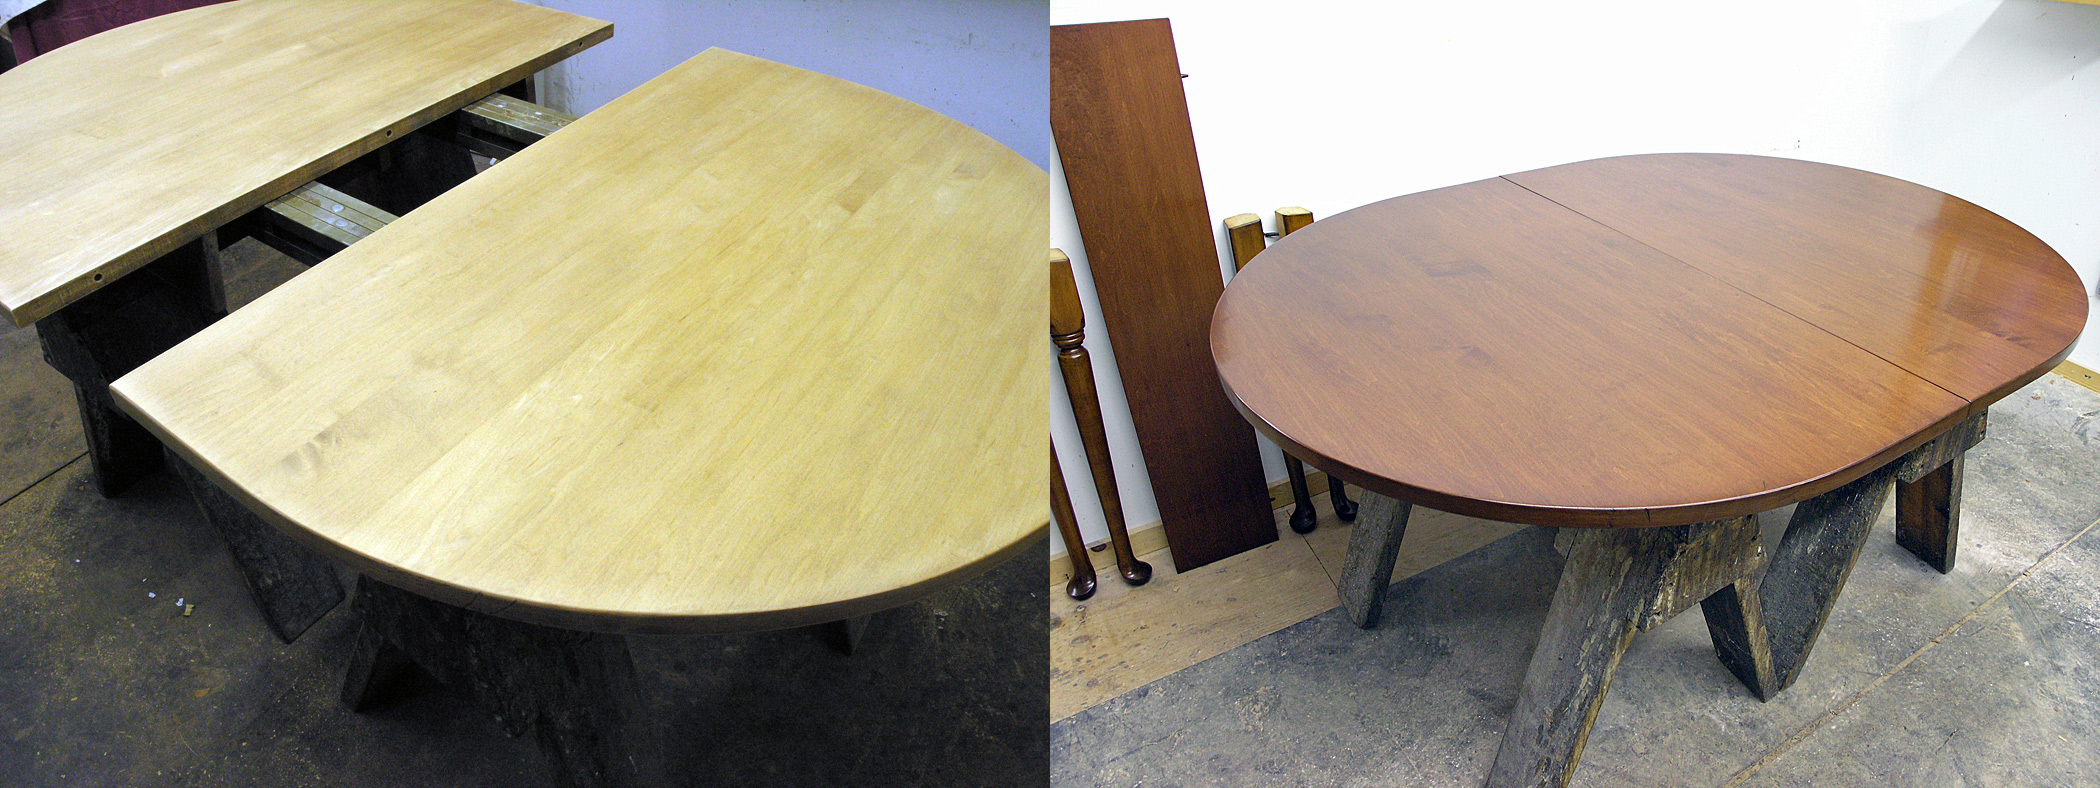 Maple table top after refinishing